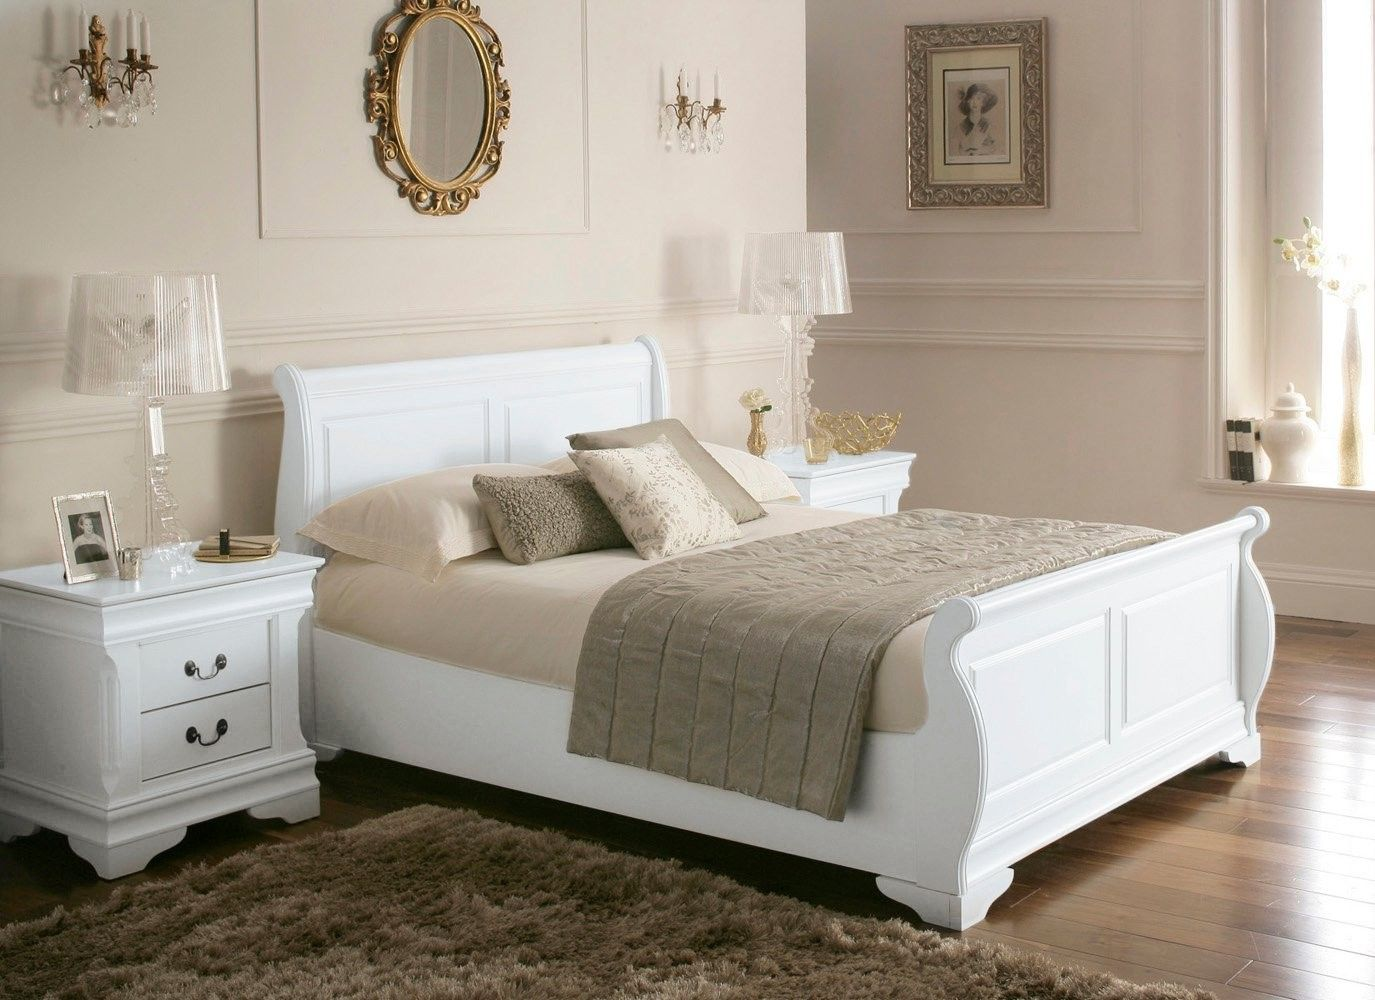 White wooden bed frame - White Wood Sleigh Beds Louie Wooden Sleigh Bed White King Size Wooden Beds